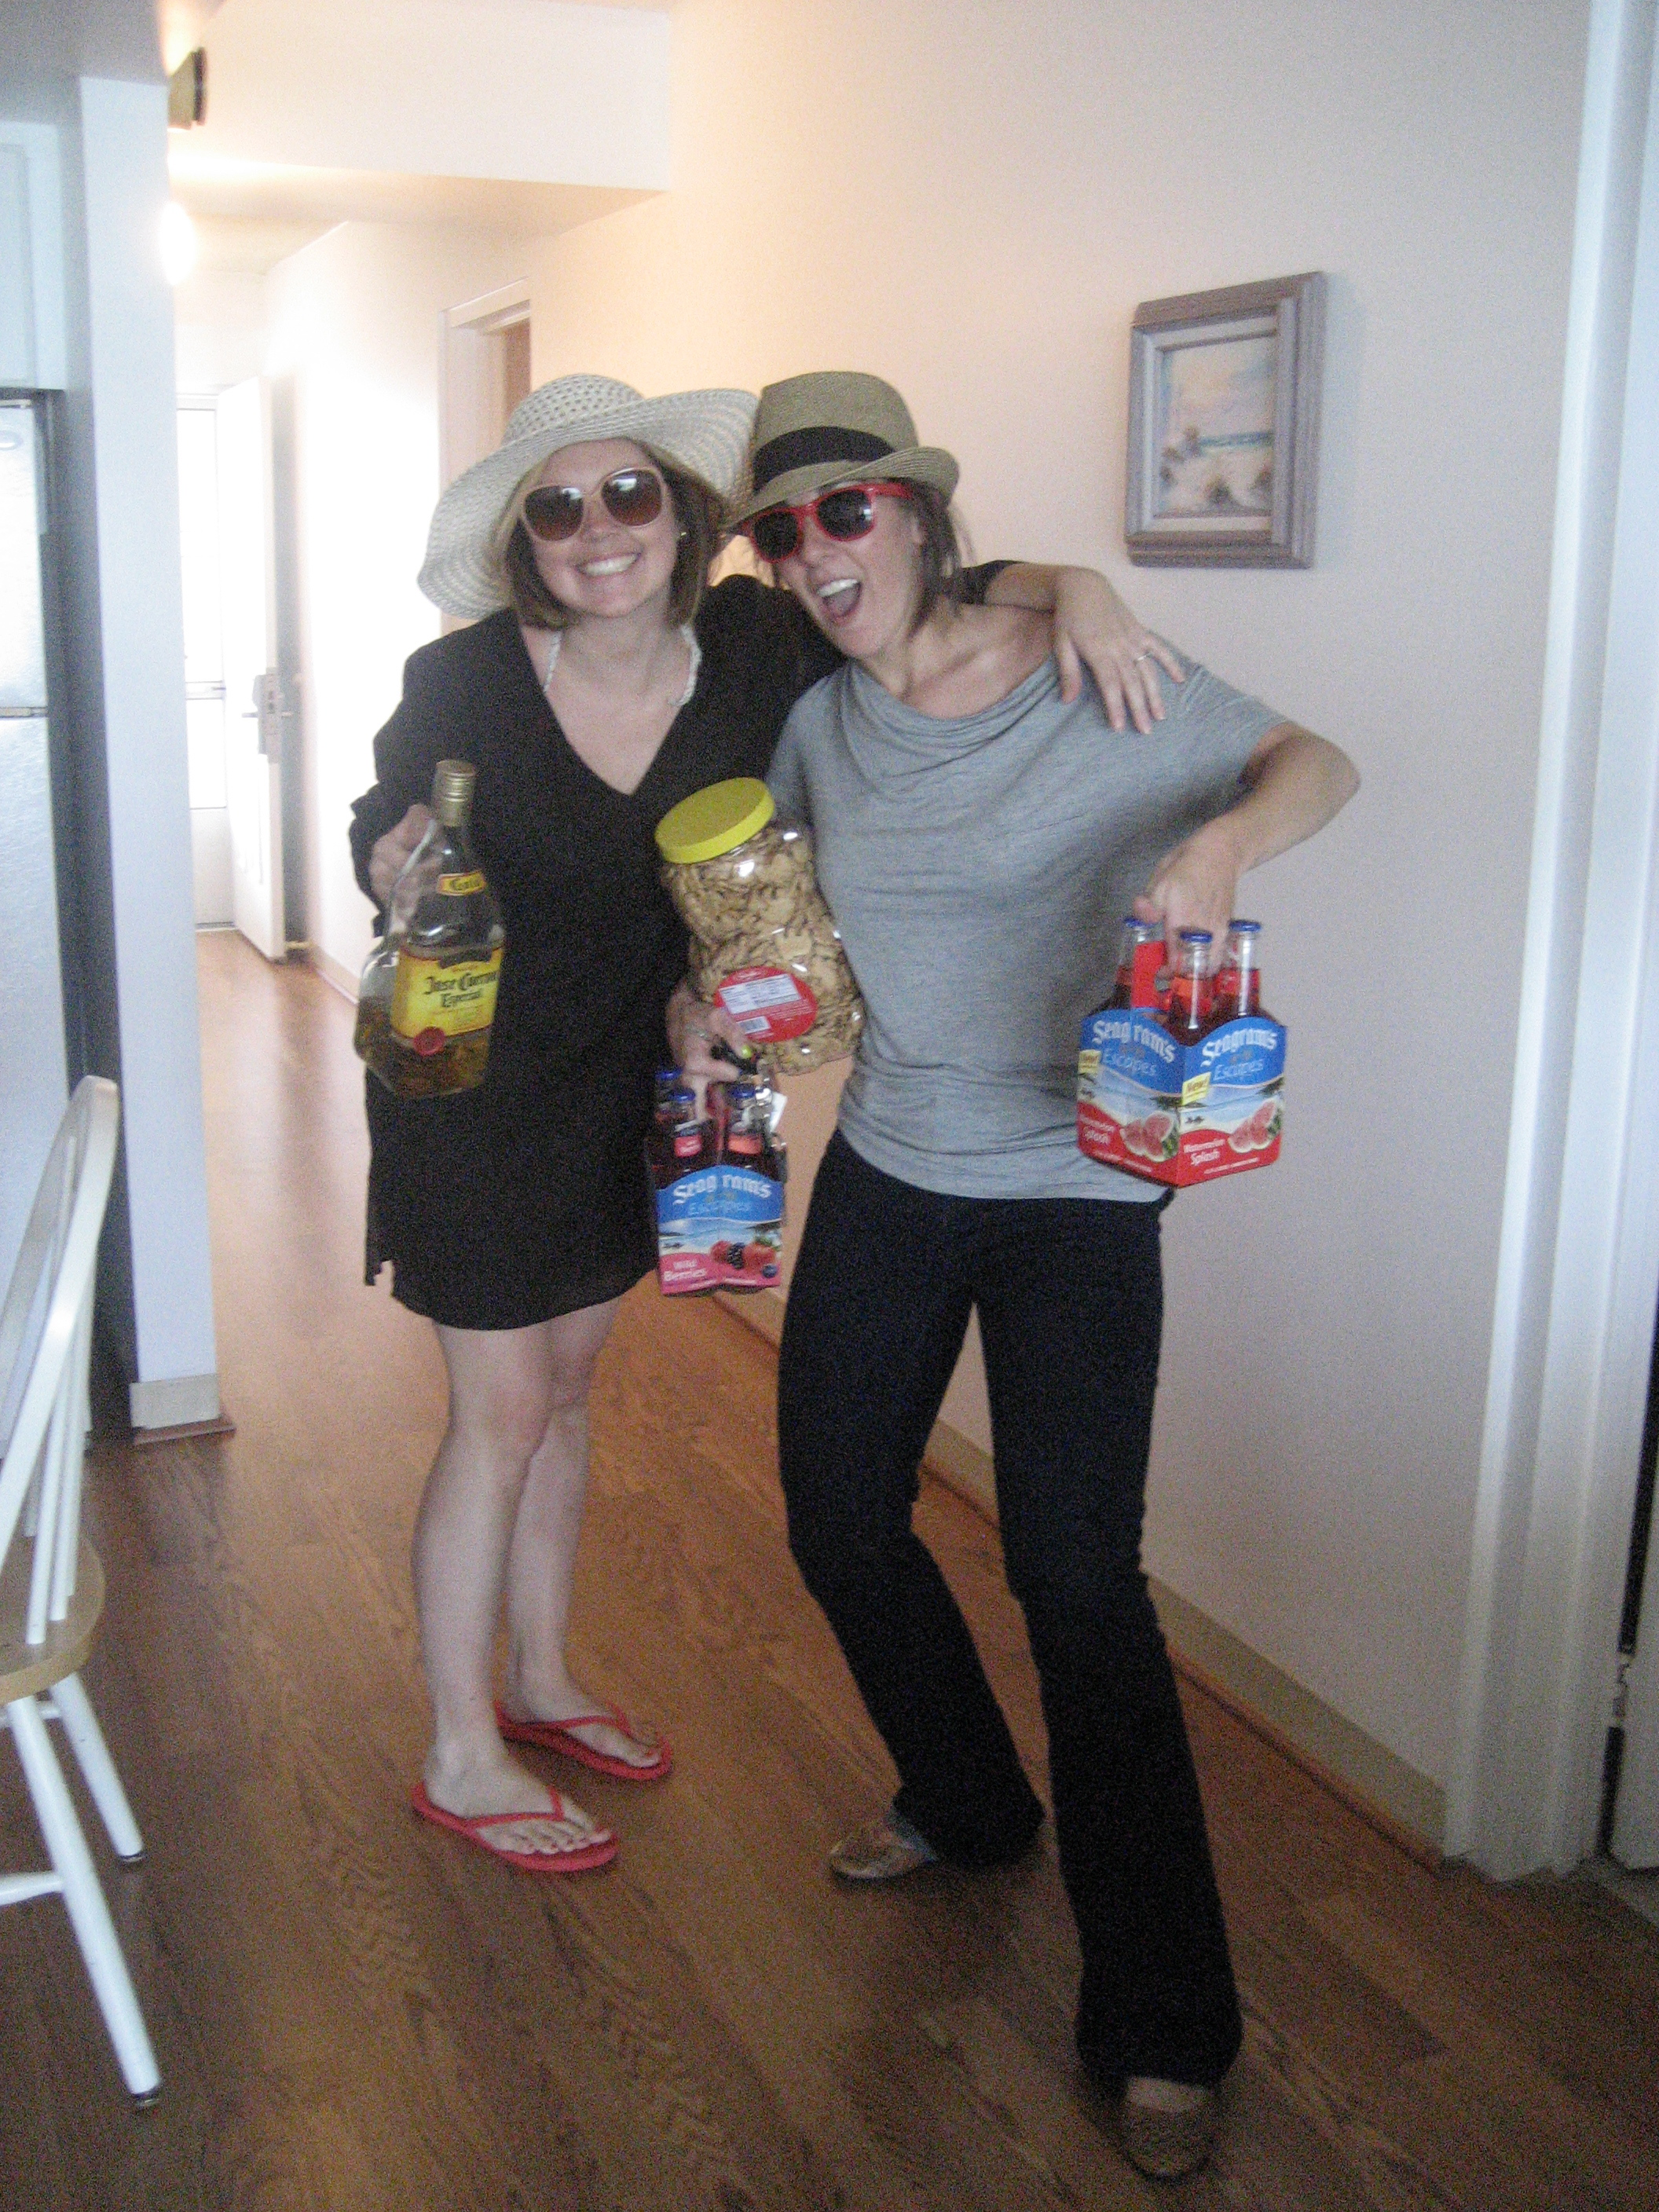 A bachelorette weekend in OCMD calls for Seagram's Escapes, animal crackers, and Cuervo.